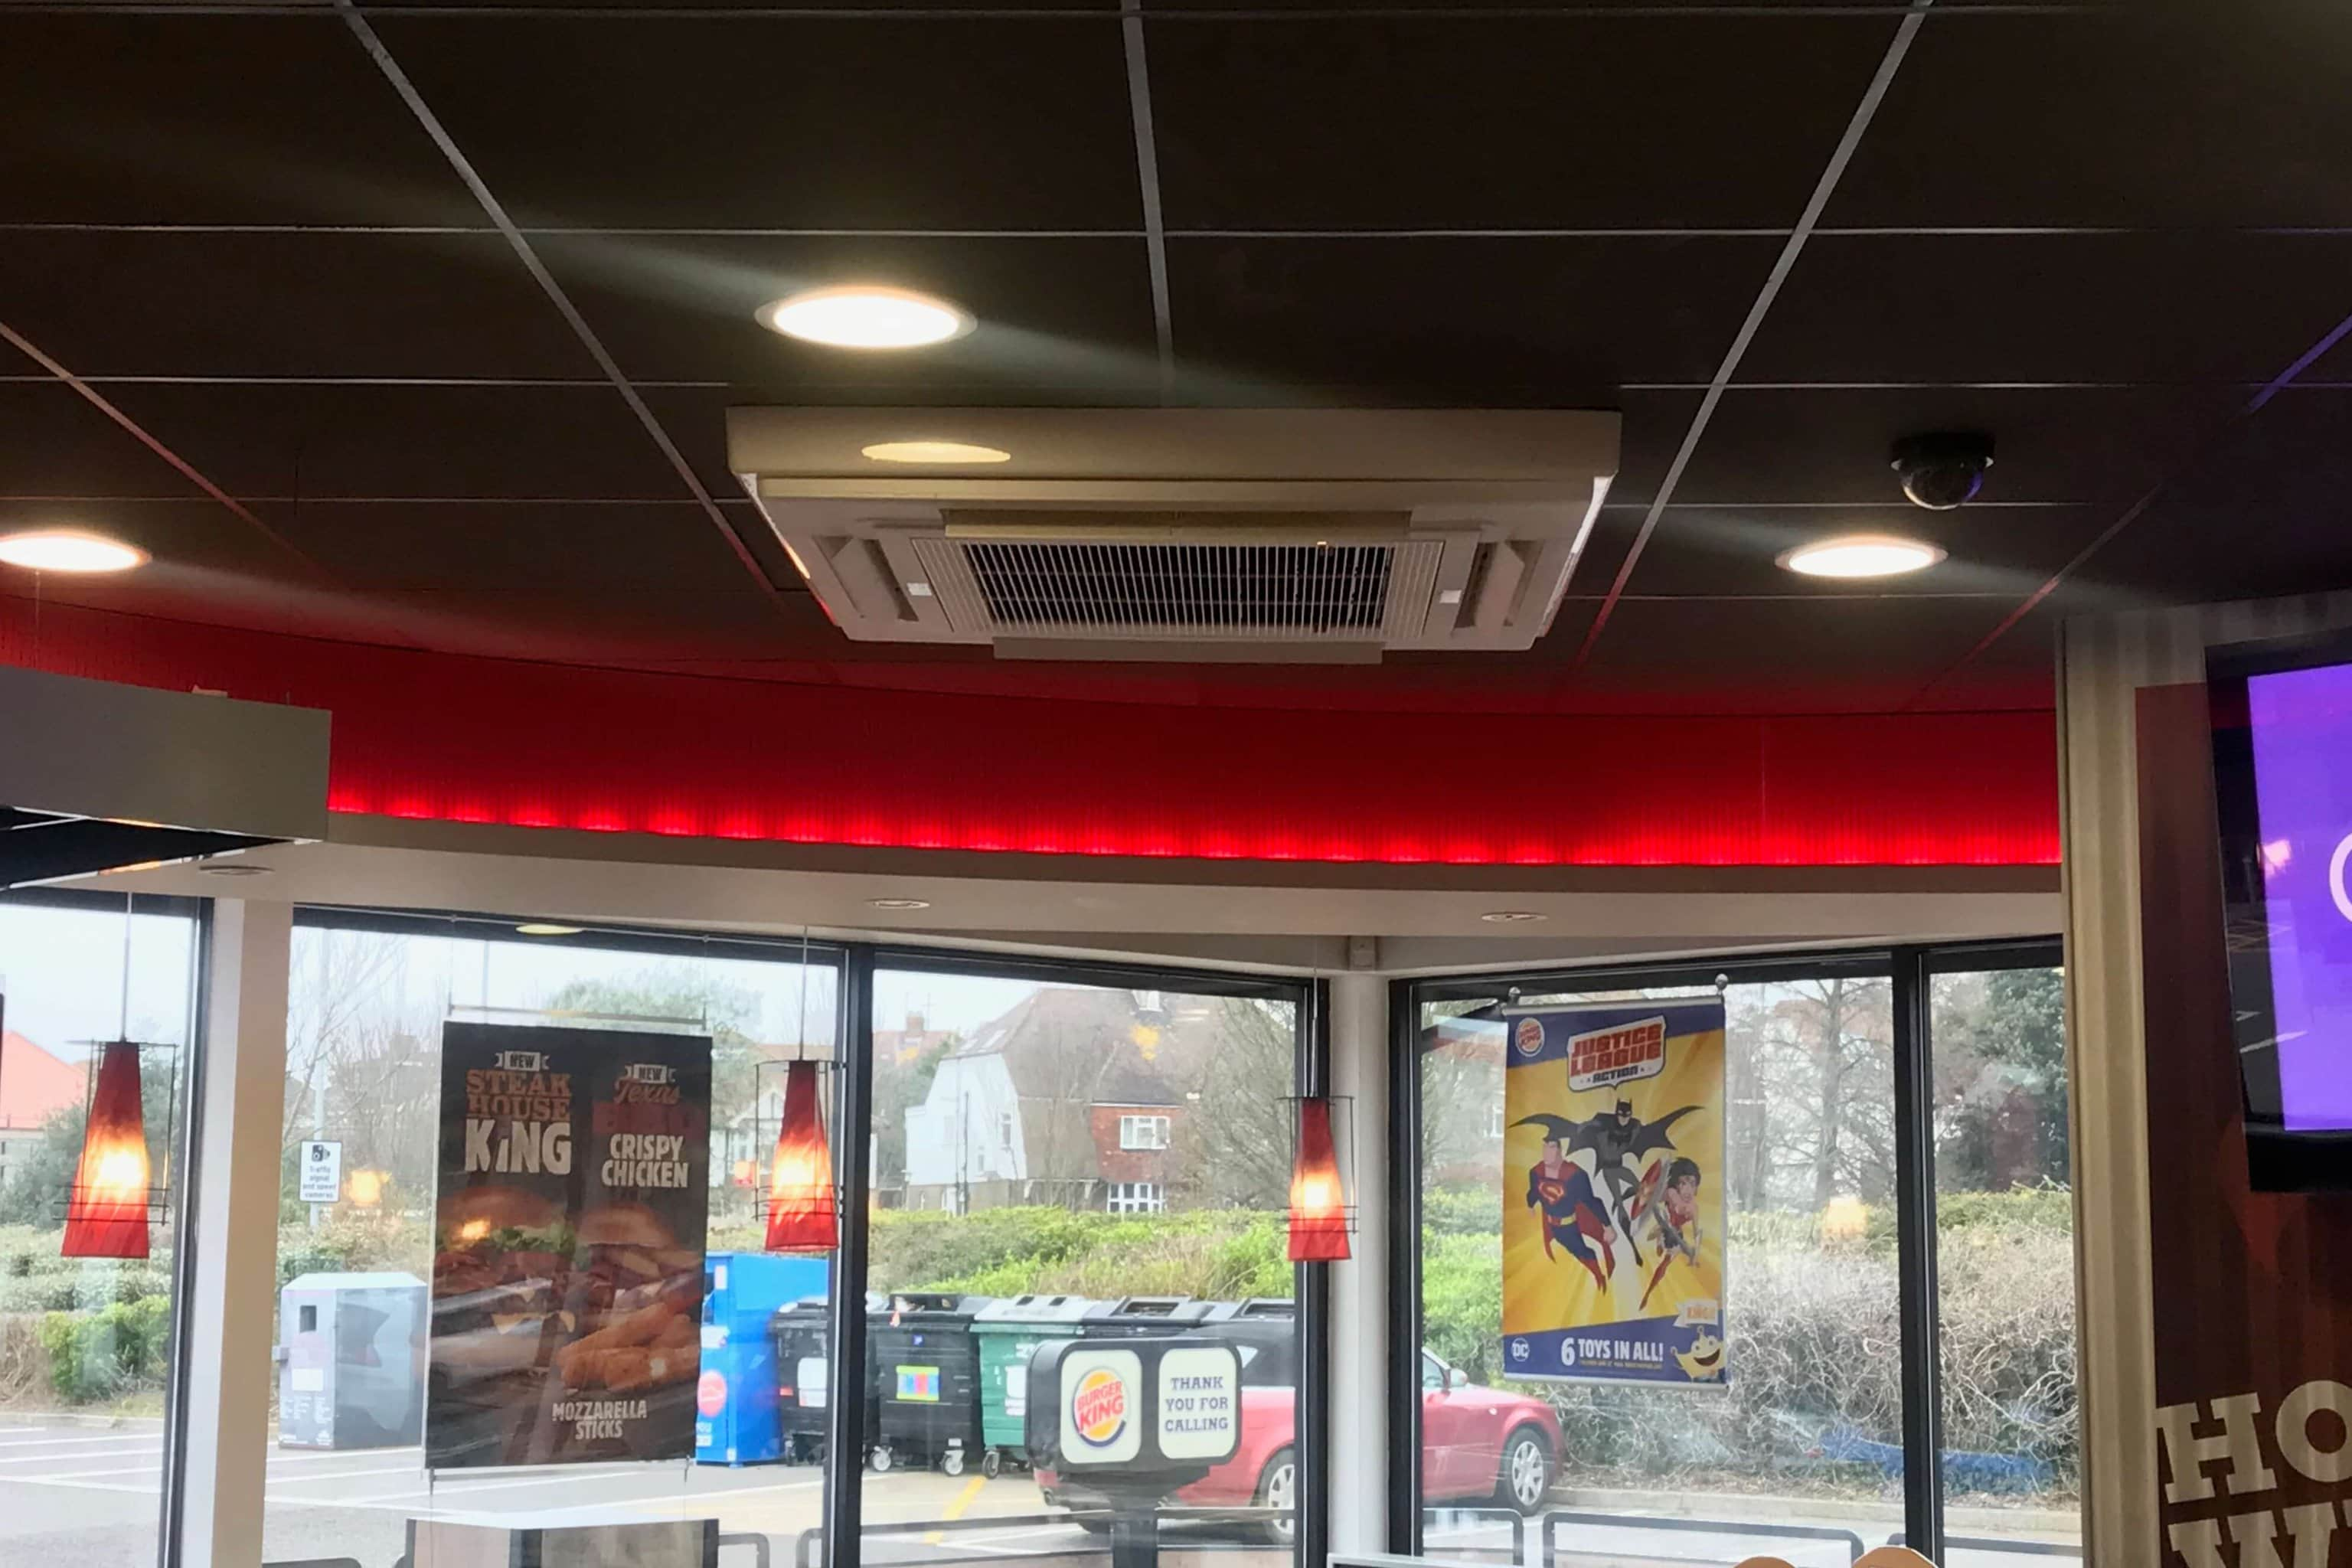 A ceiling air conditioning unit installed in a Burger King restaurant